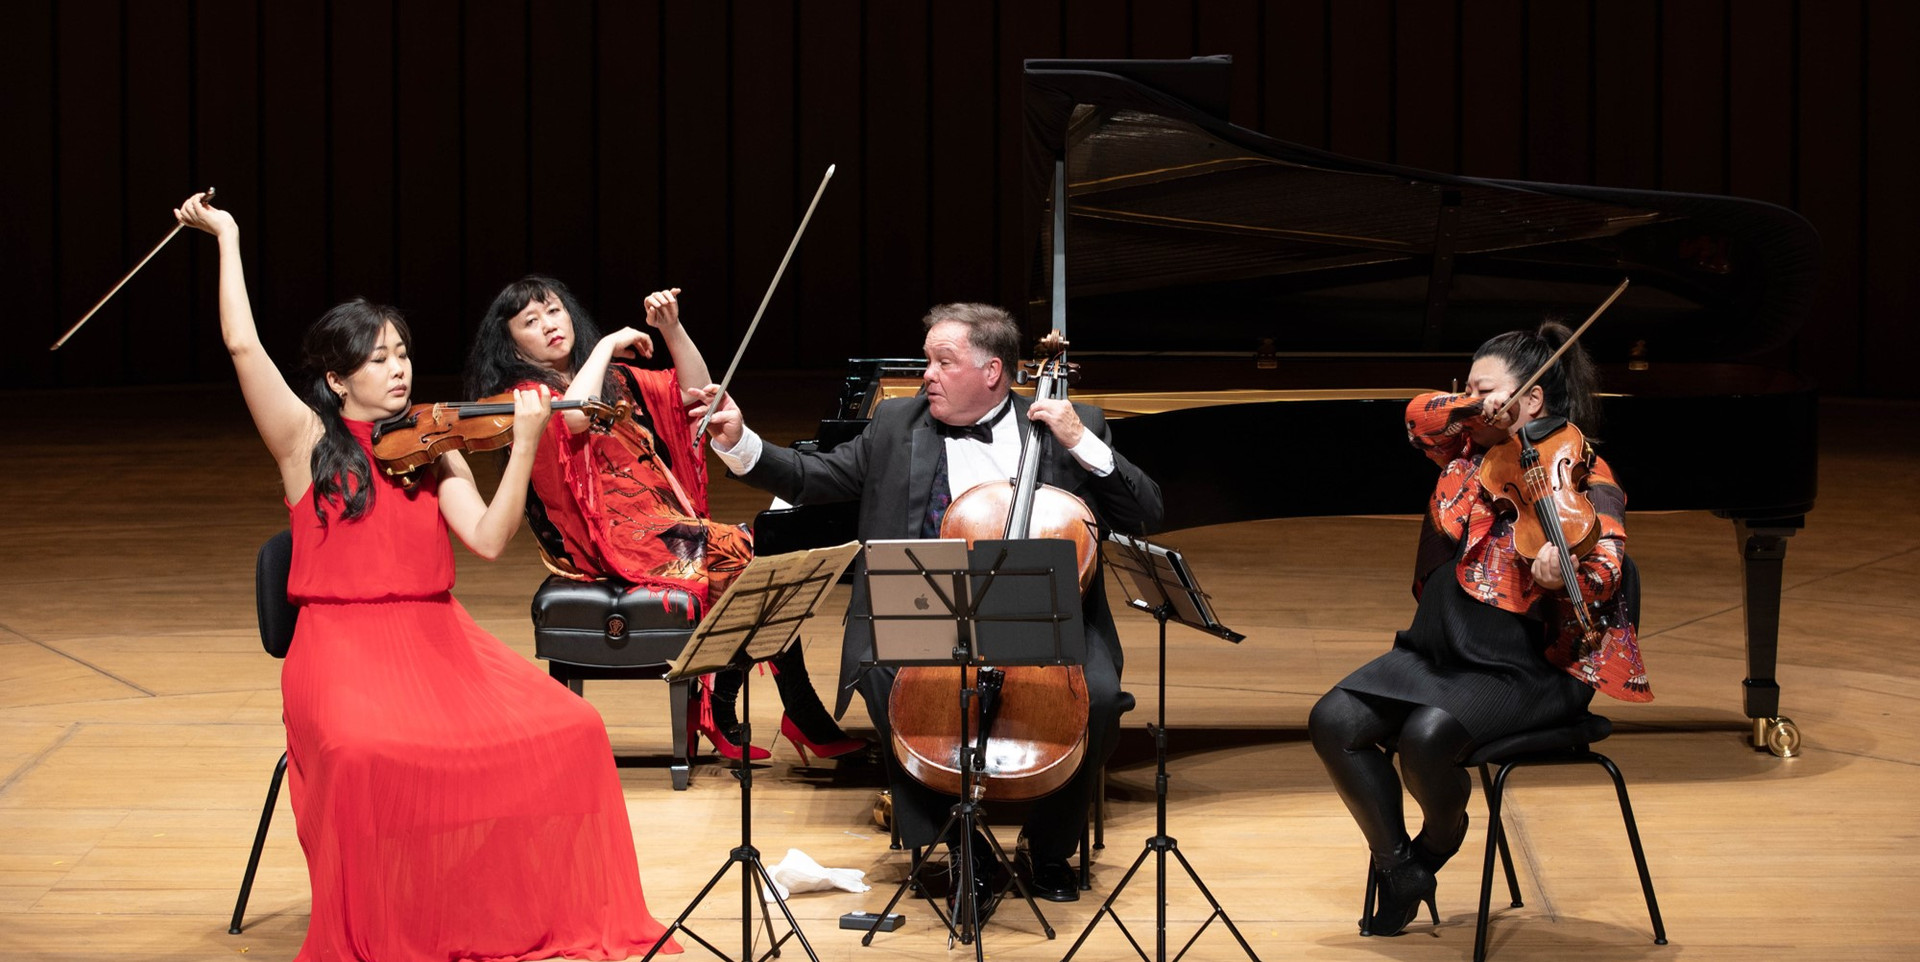 Concert at the National Kaohsiung Center for the Arts (Weiwuying)